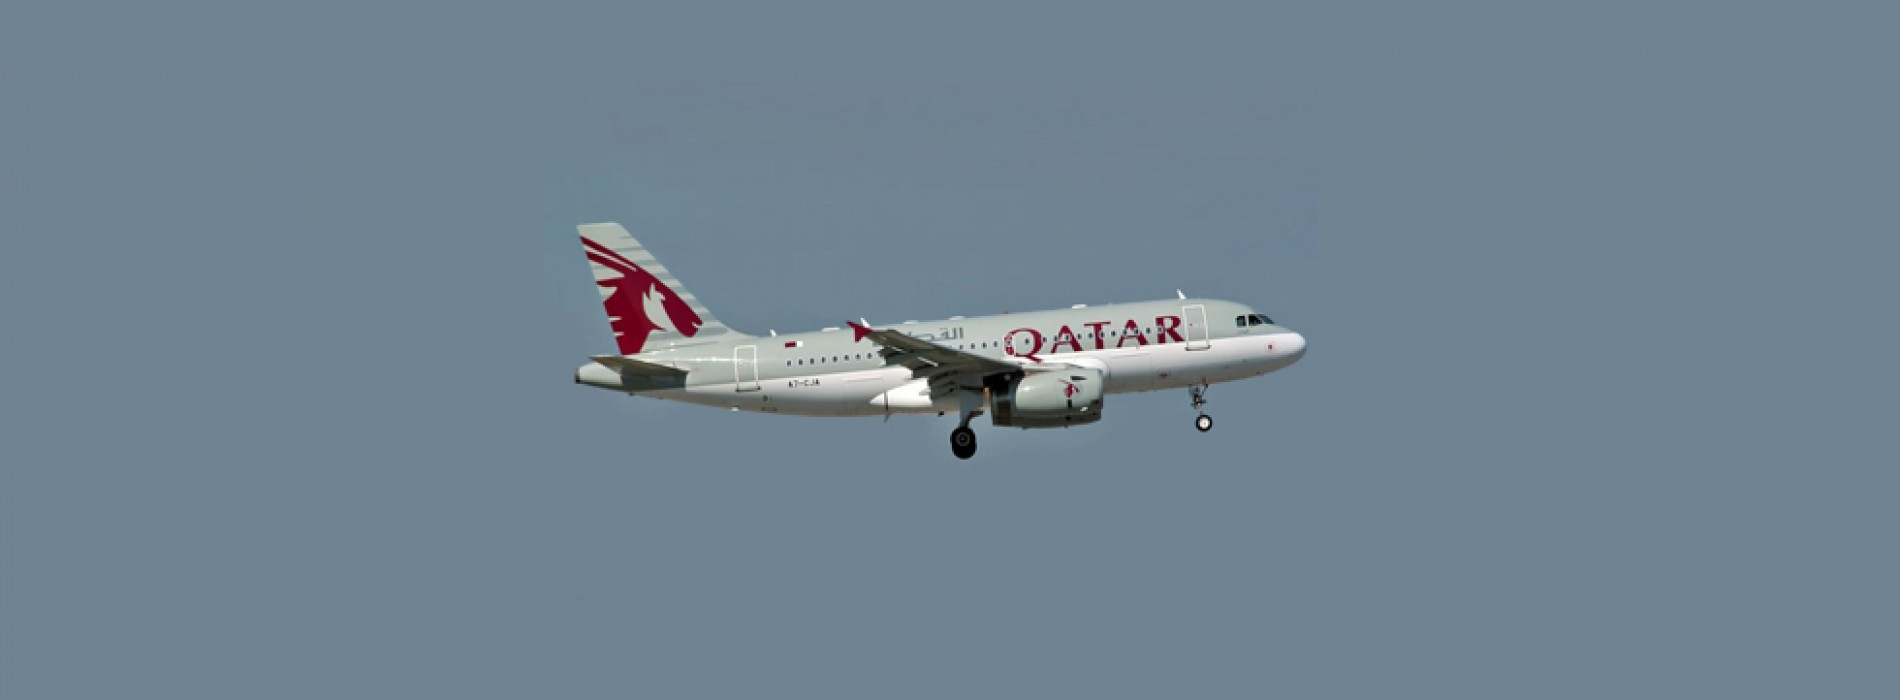 Qatar Airways hastens India push, plans 100 new jets amid Modi's aviation drive